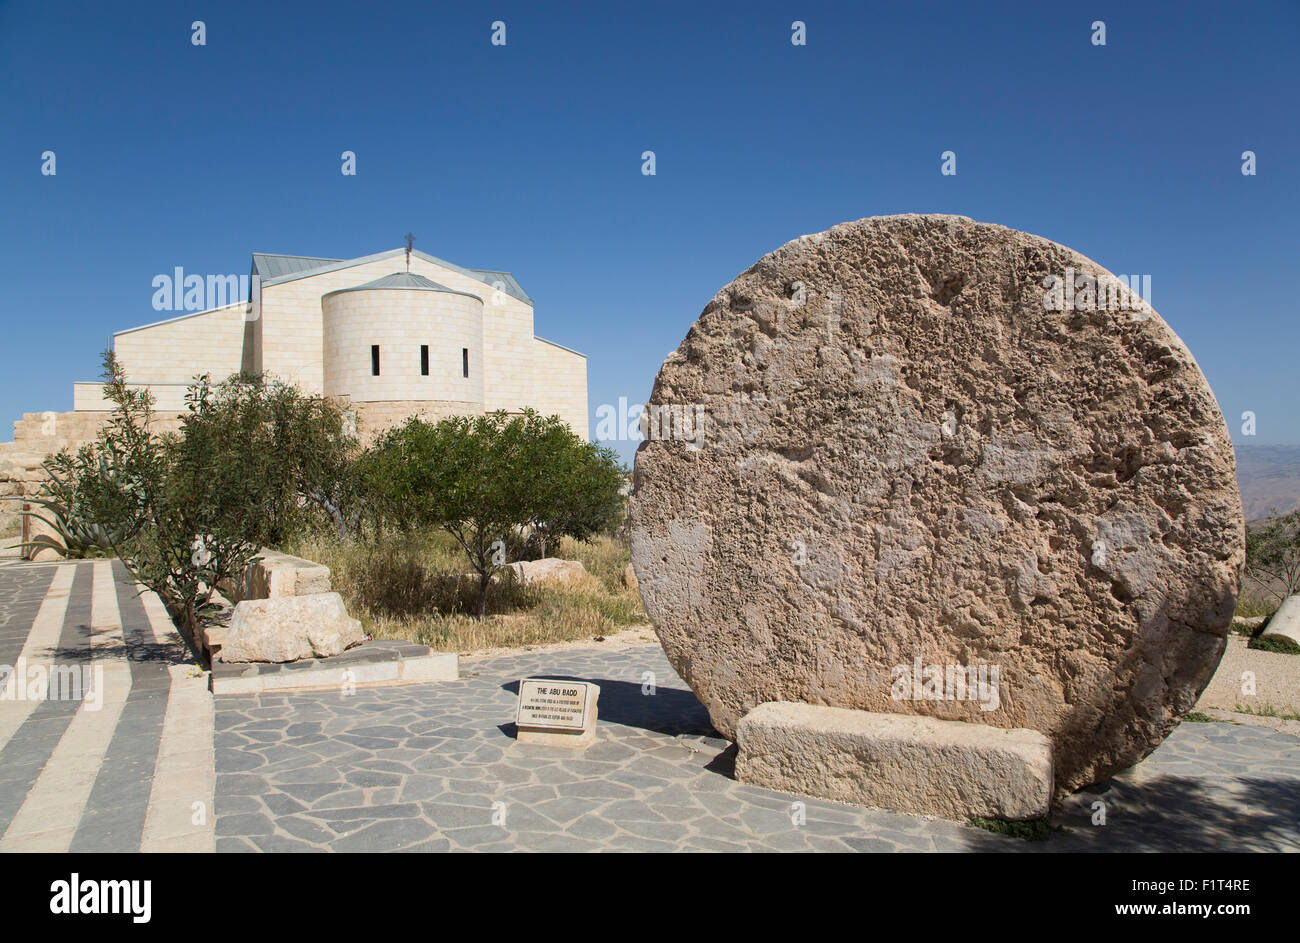 Abu Badd, a rolling stone used to fortify a door, Moses Memorial Church in the background, Mount Nebo, Jordan, Middle - Stock Image